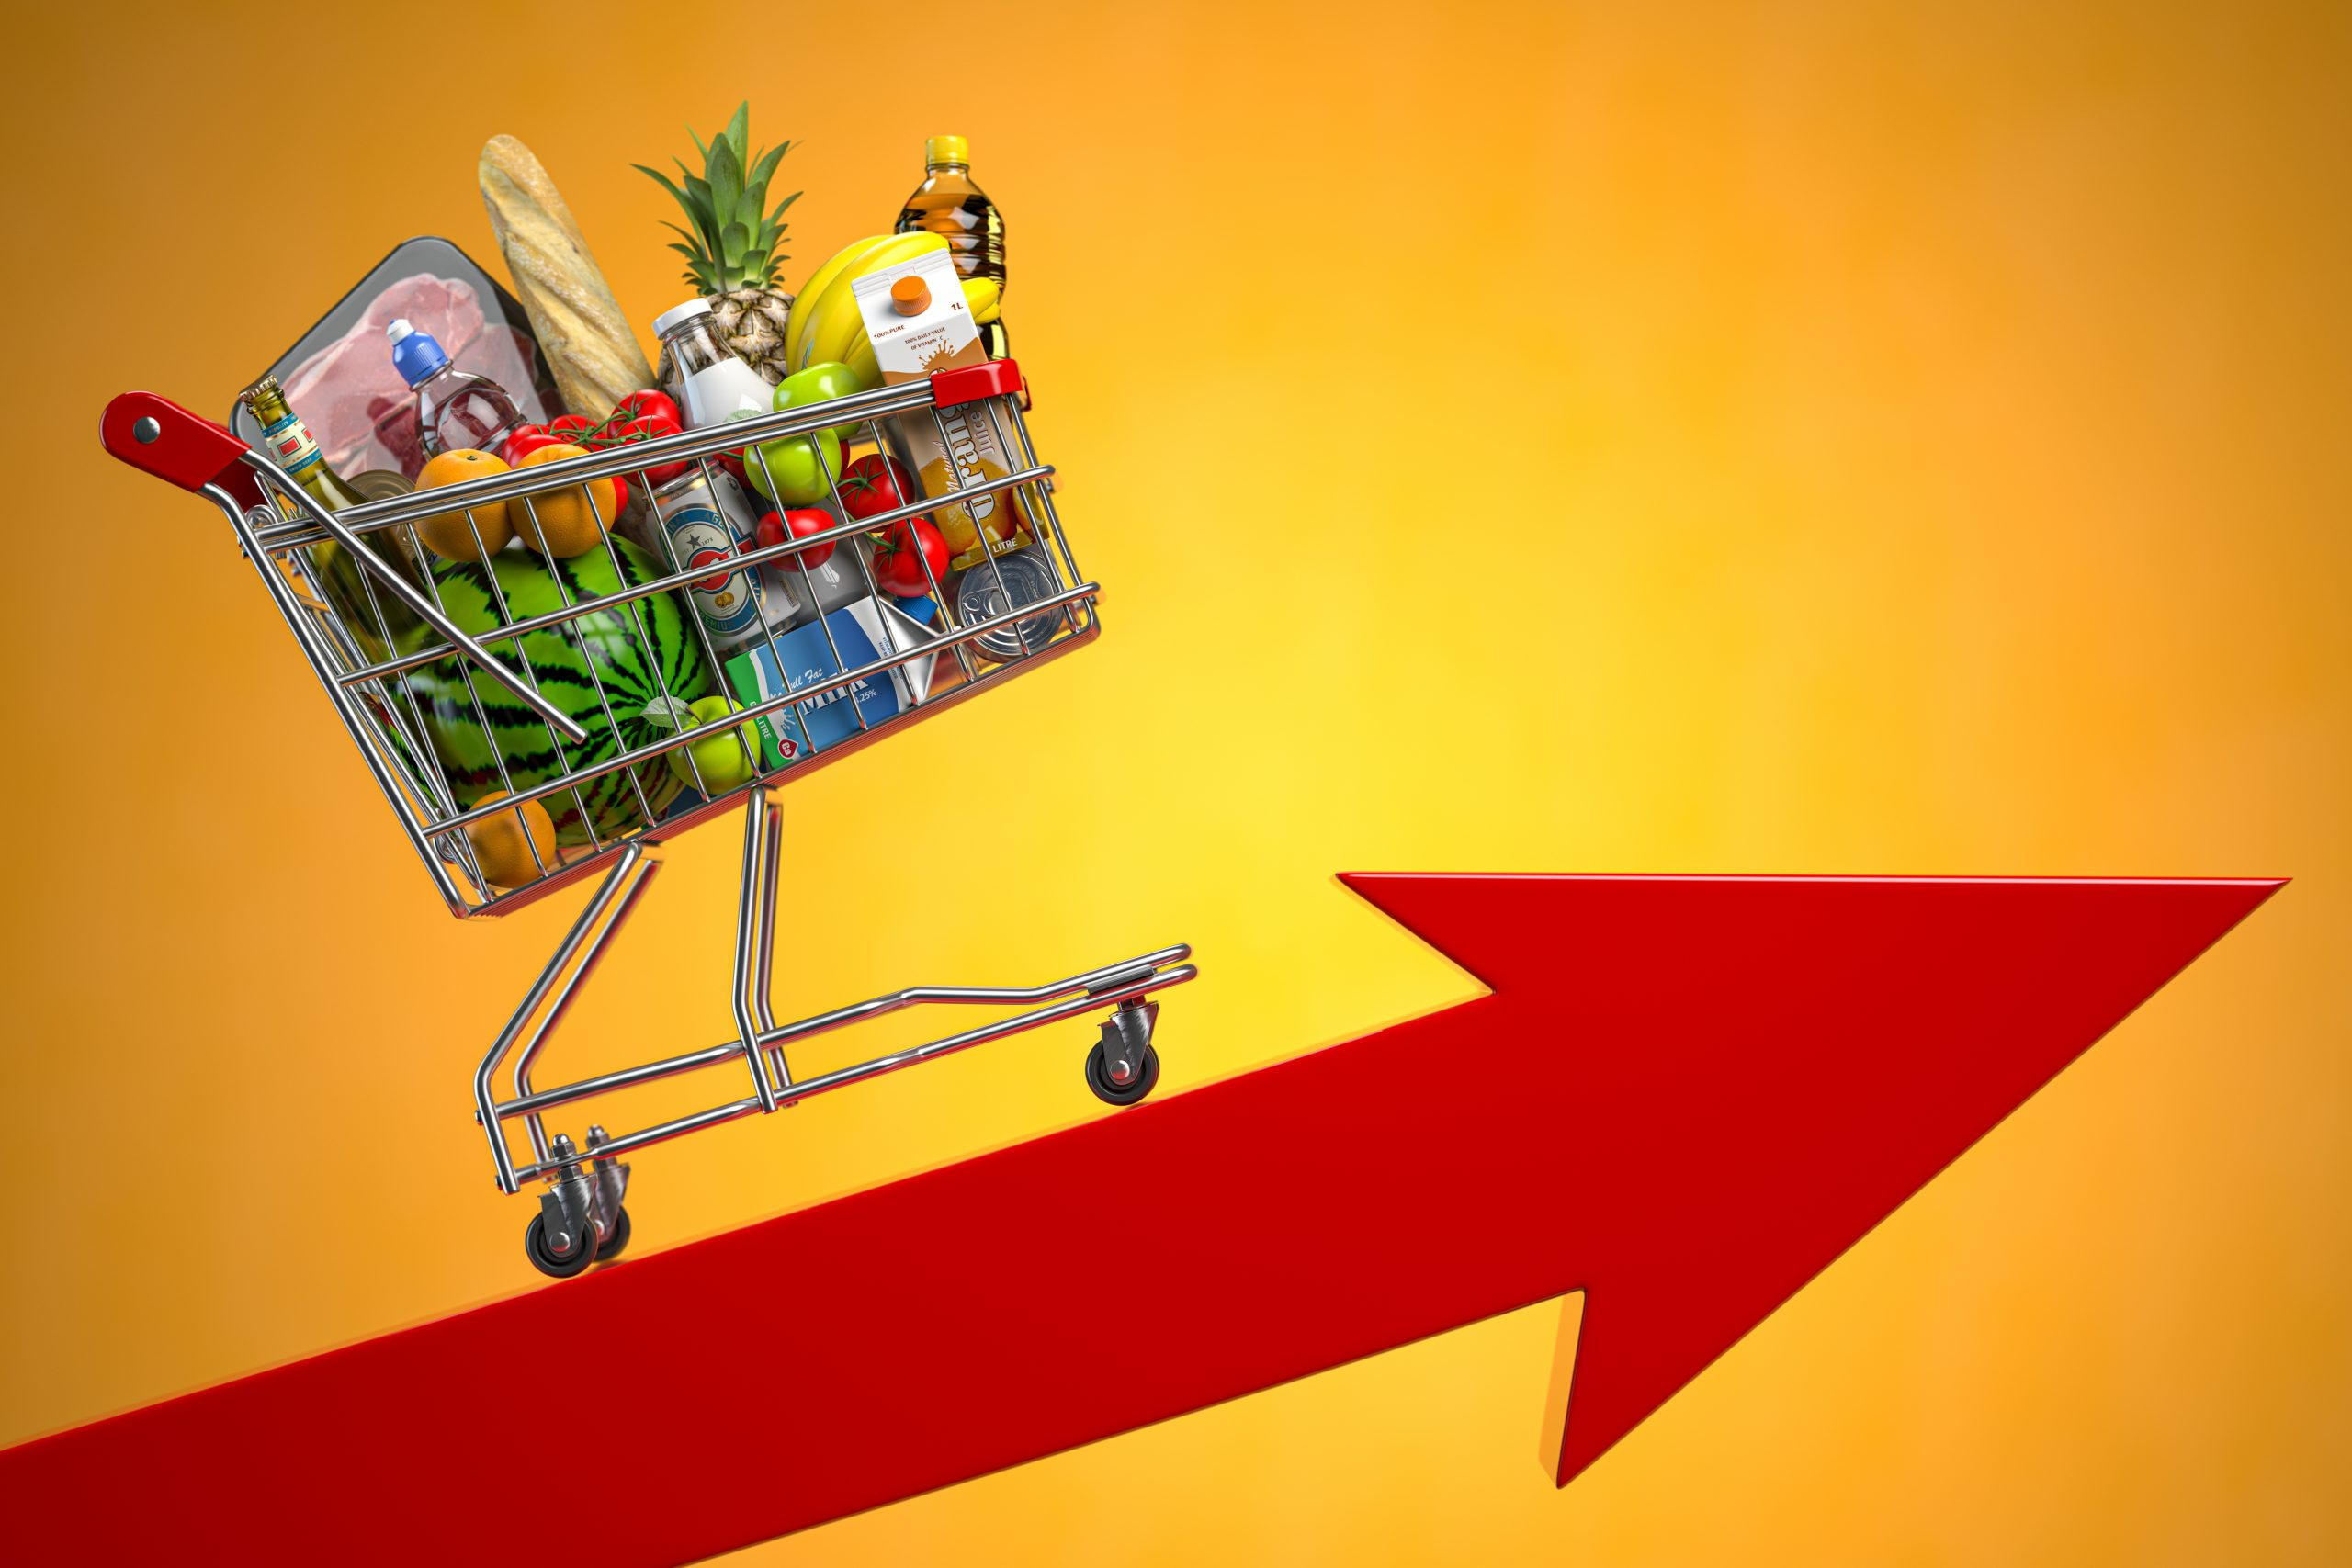 Nudge back to normality drives market share gains for all big grocers